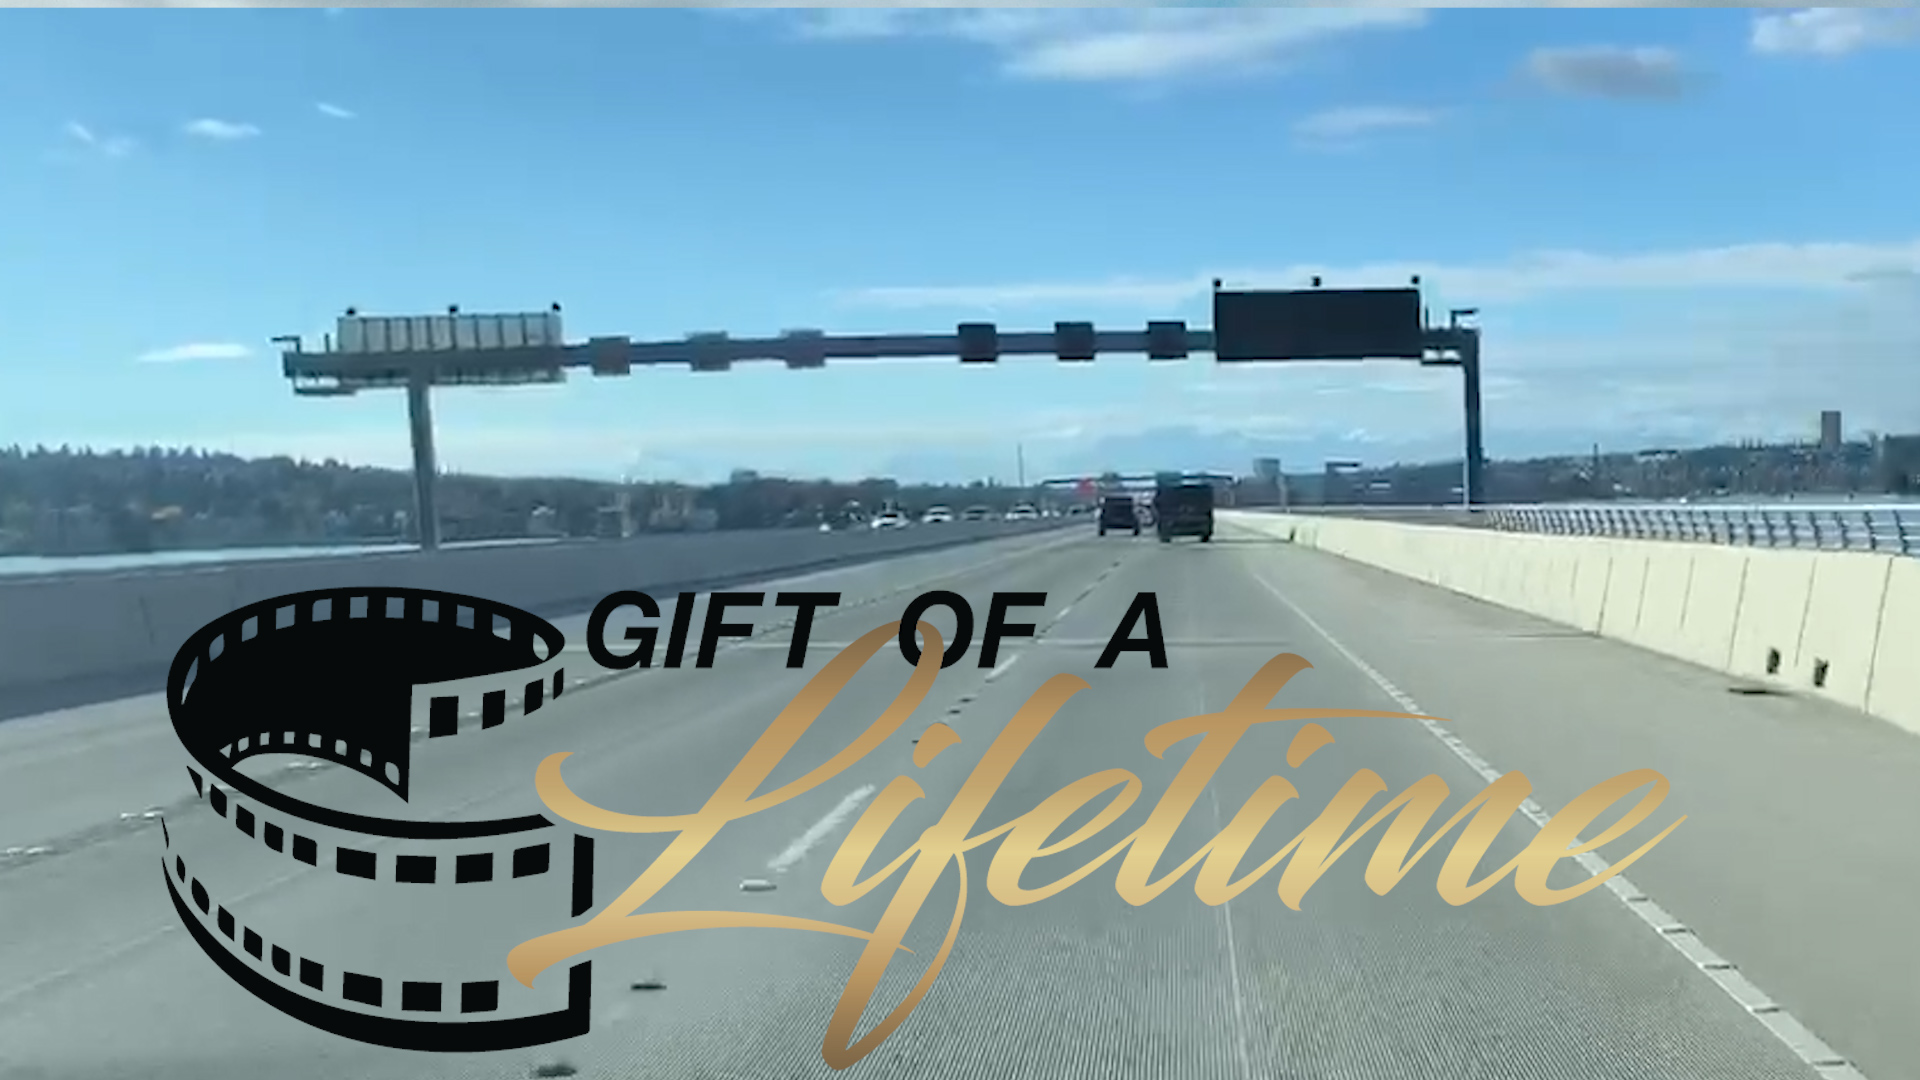 GIFT OF A LIFETIME SHORTS - TOM JENNINGS - WHAT A BEAUTIFUL PIECE OF ROAD